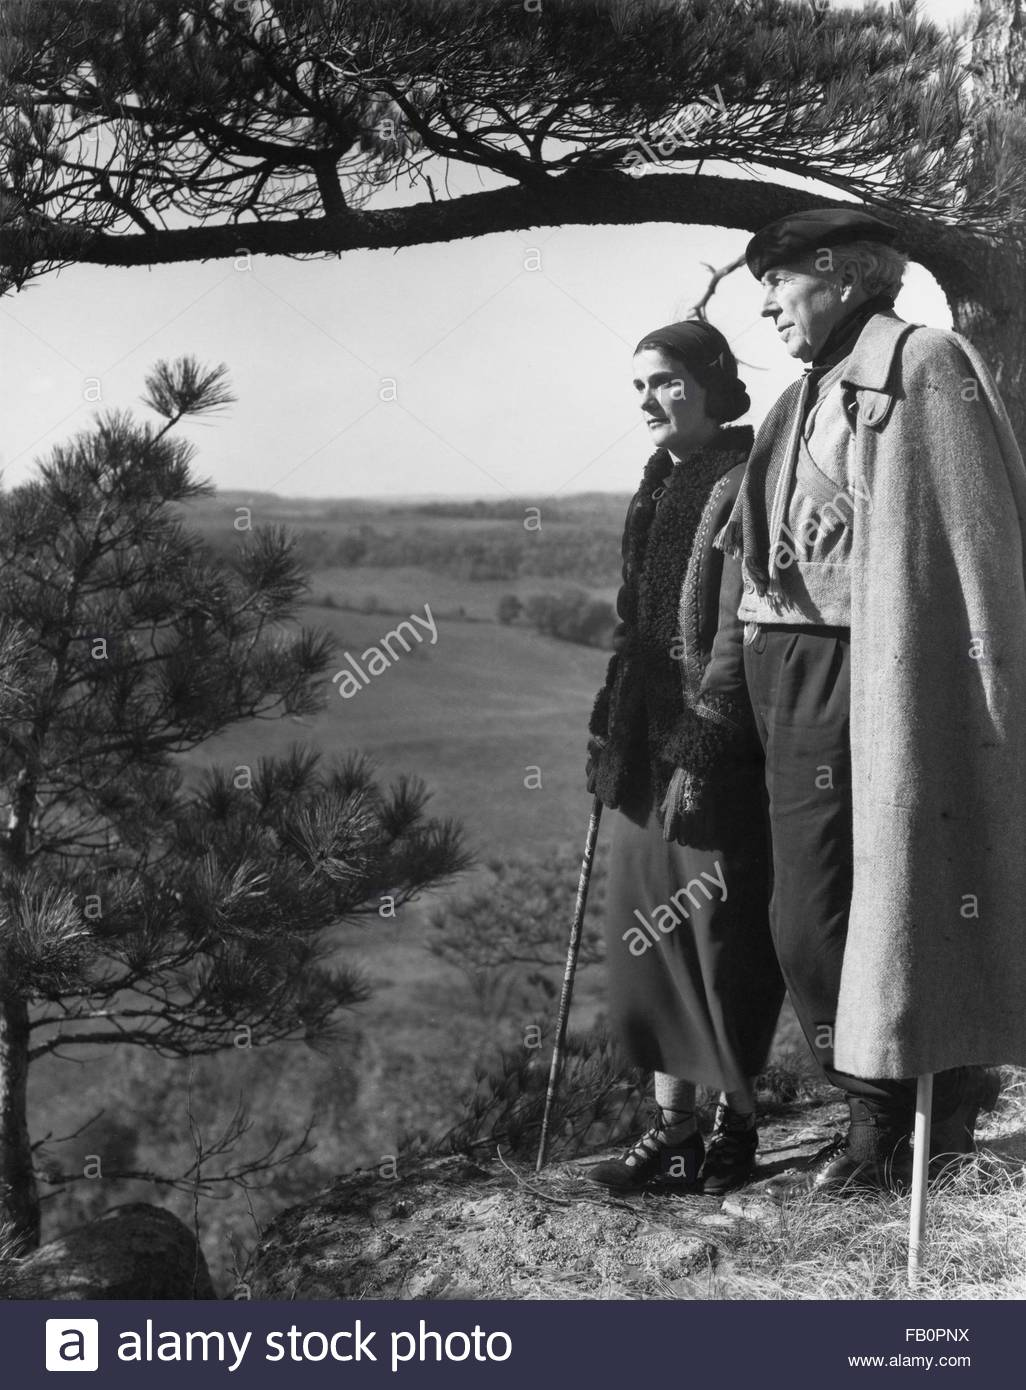 Portraits of Frank Lloyd Wright and others at Taliesin East [graphic], 1937 Dec. Frank Lloyd Wright with his wife, - Stock Image